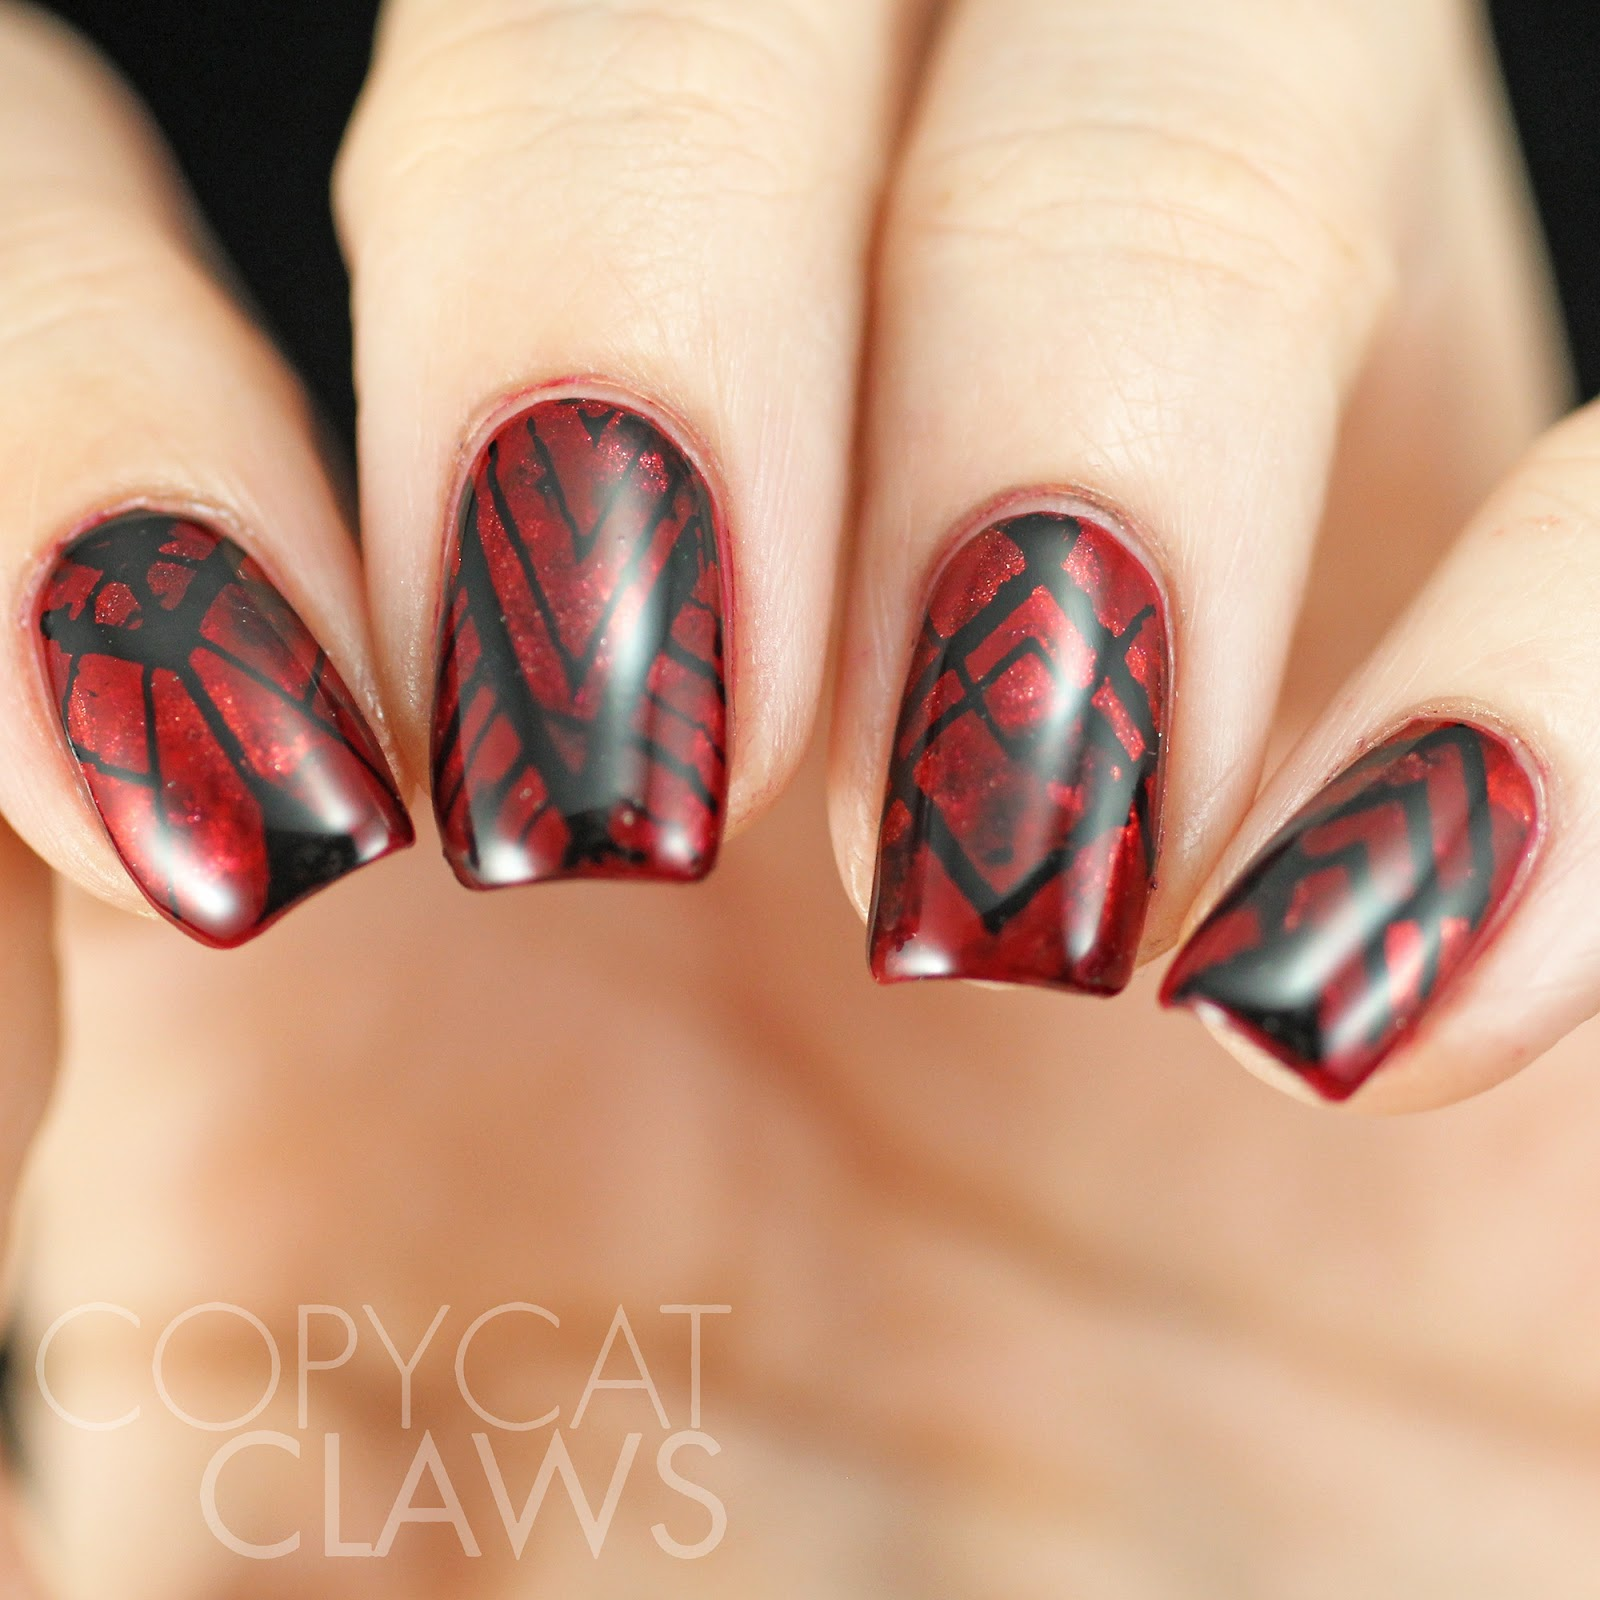 Copycat Claws: Sunday Stamping - Red and Black Nails